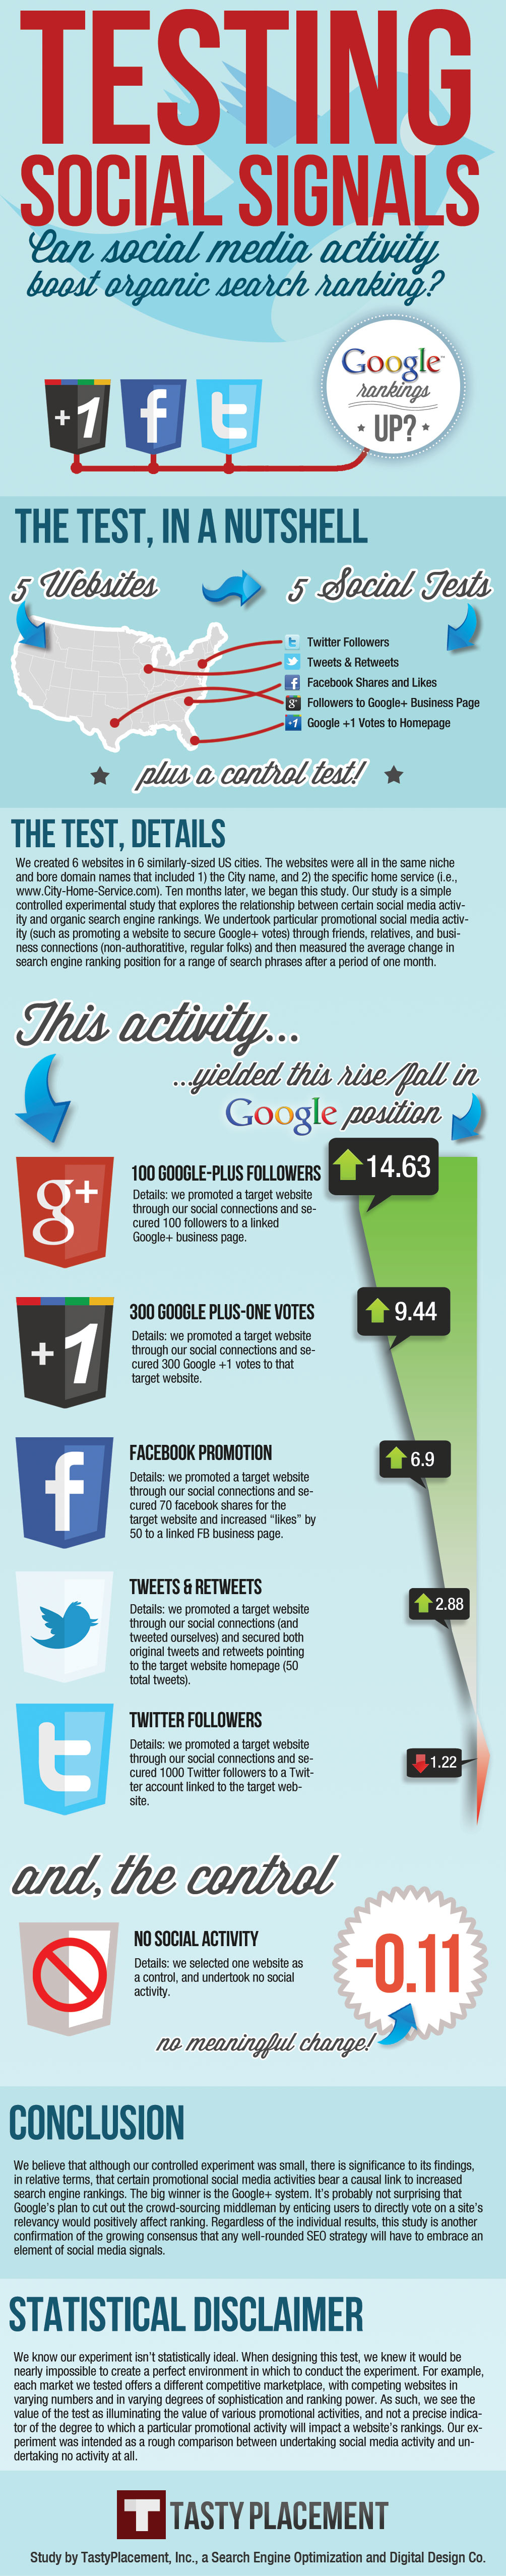 how does social media affect search ranking pamorama Imprescindibles AB 32